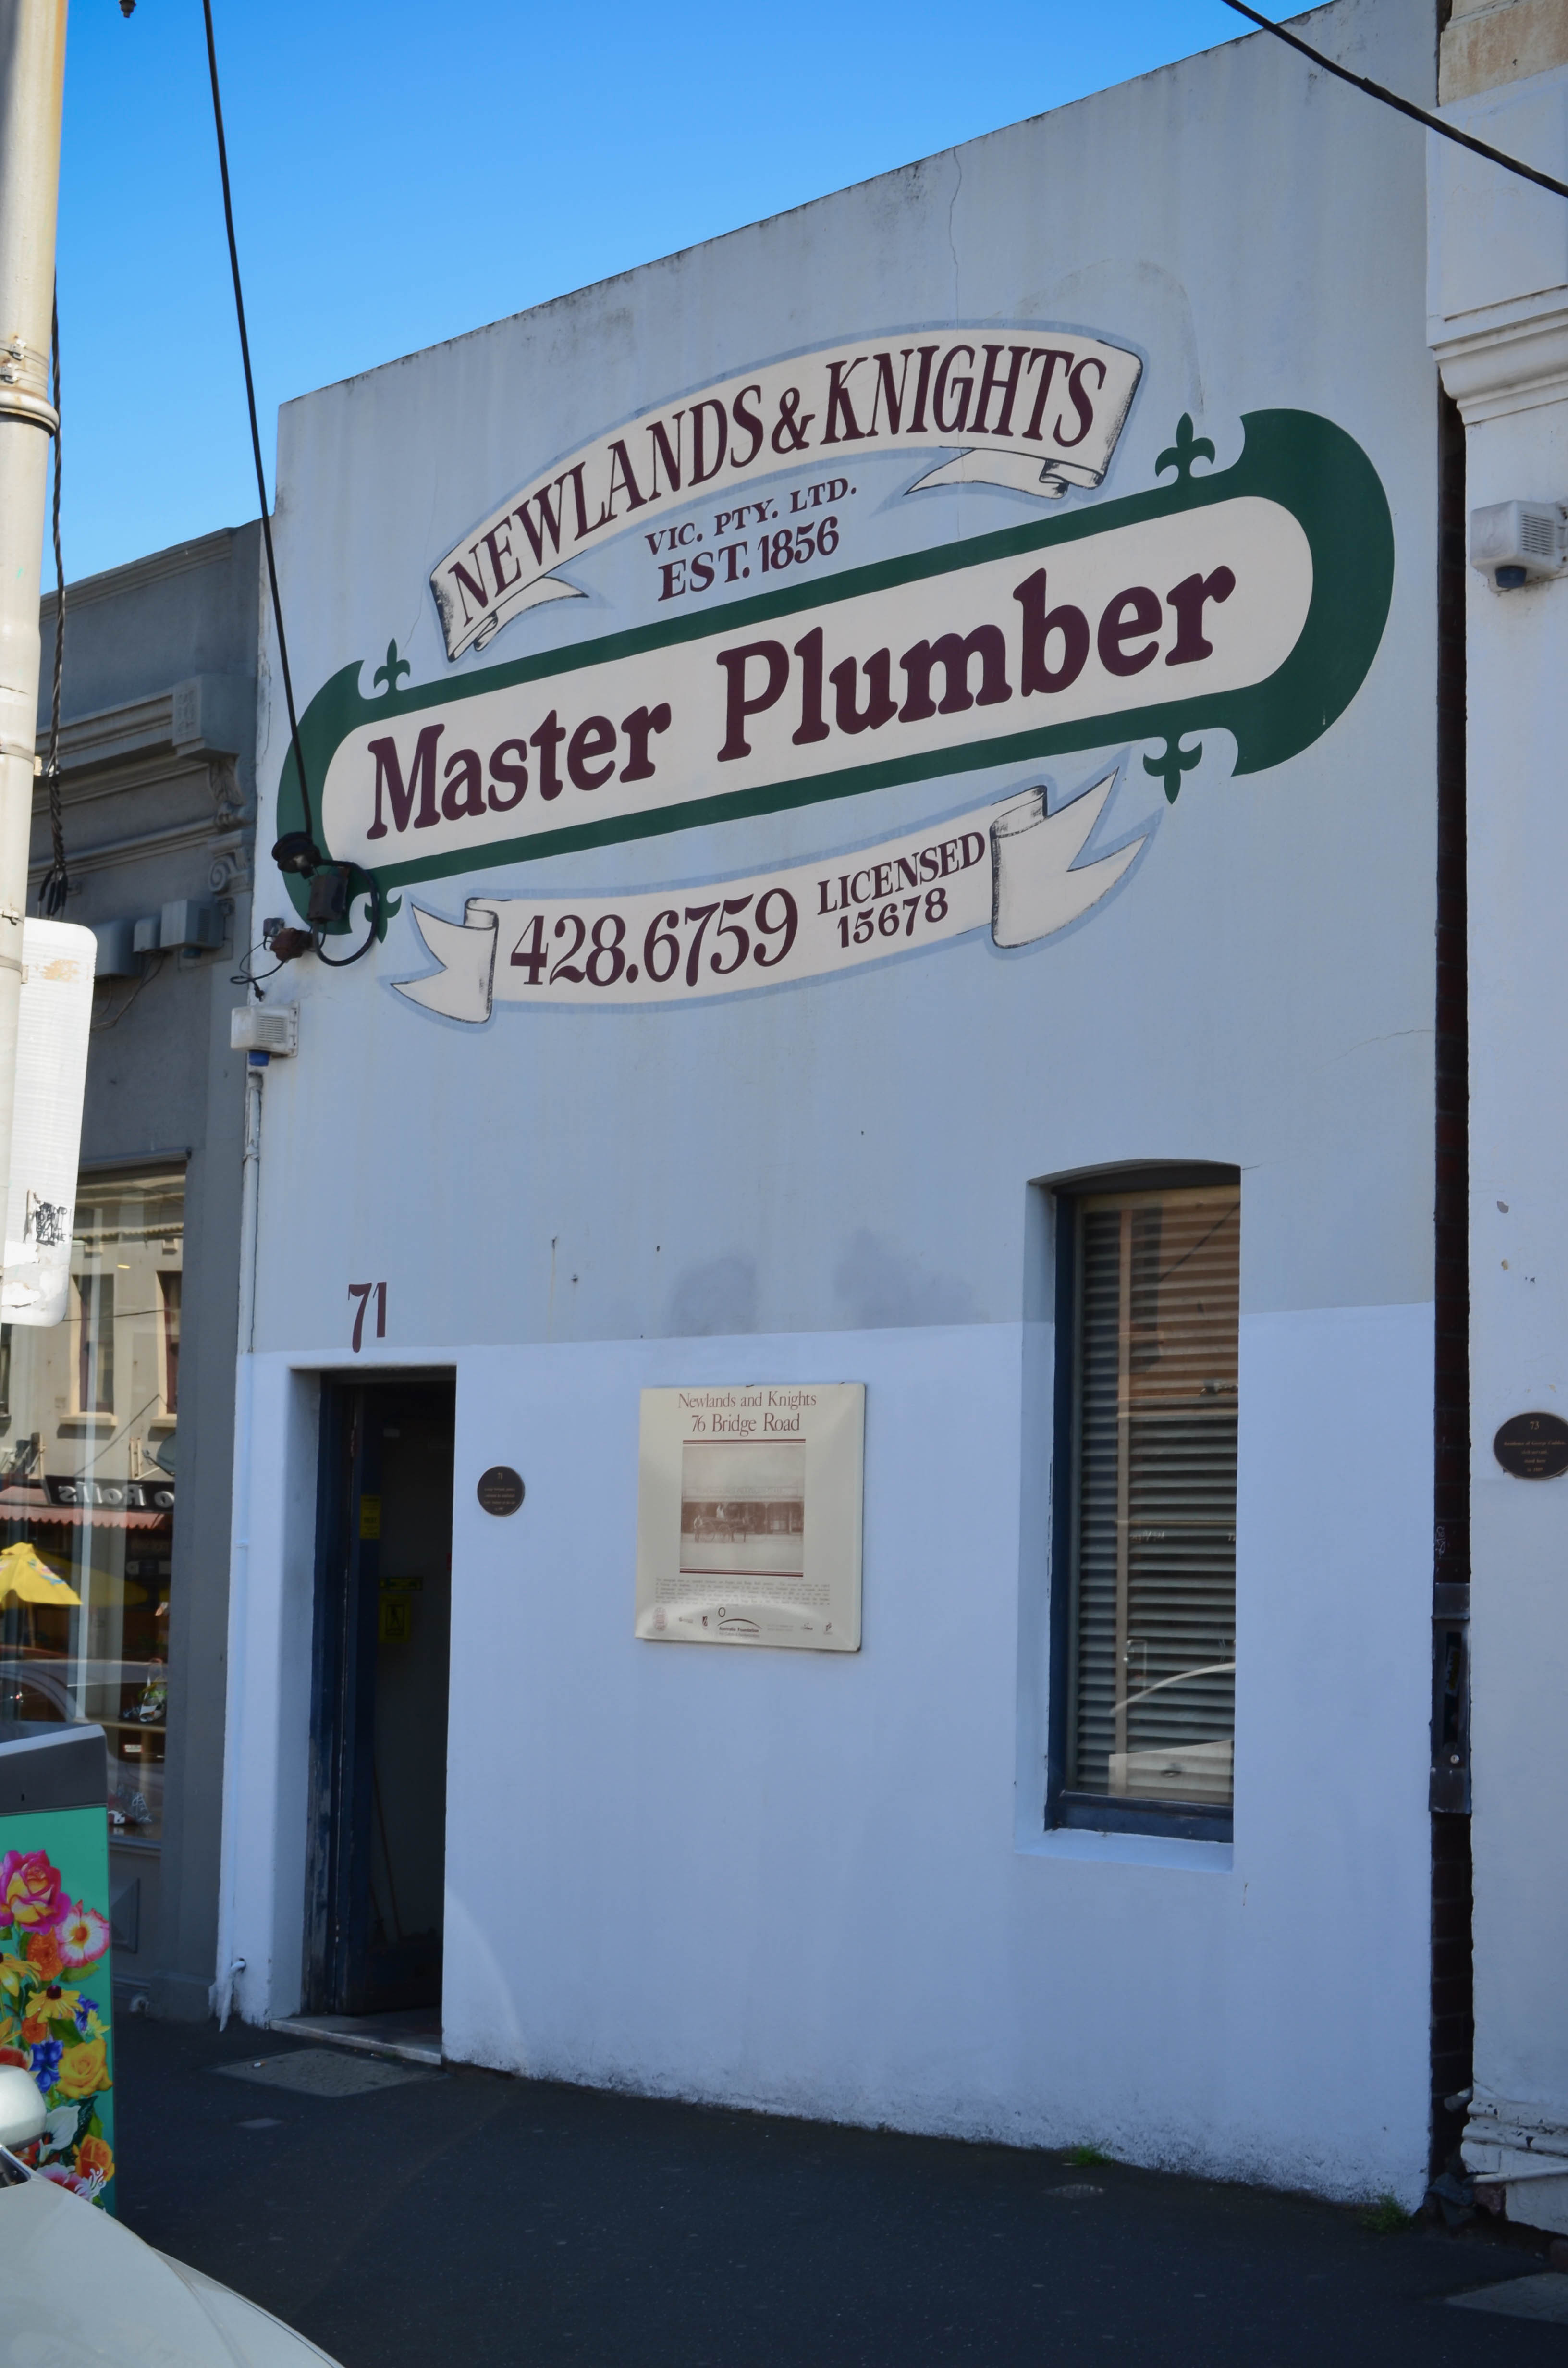 Newlands  Knights Plumbing  Plumbers  Gas Fitters  71